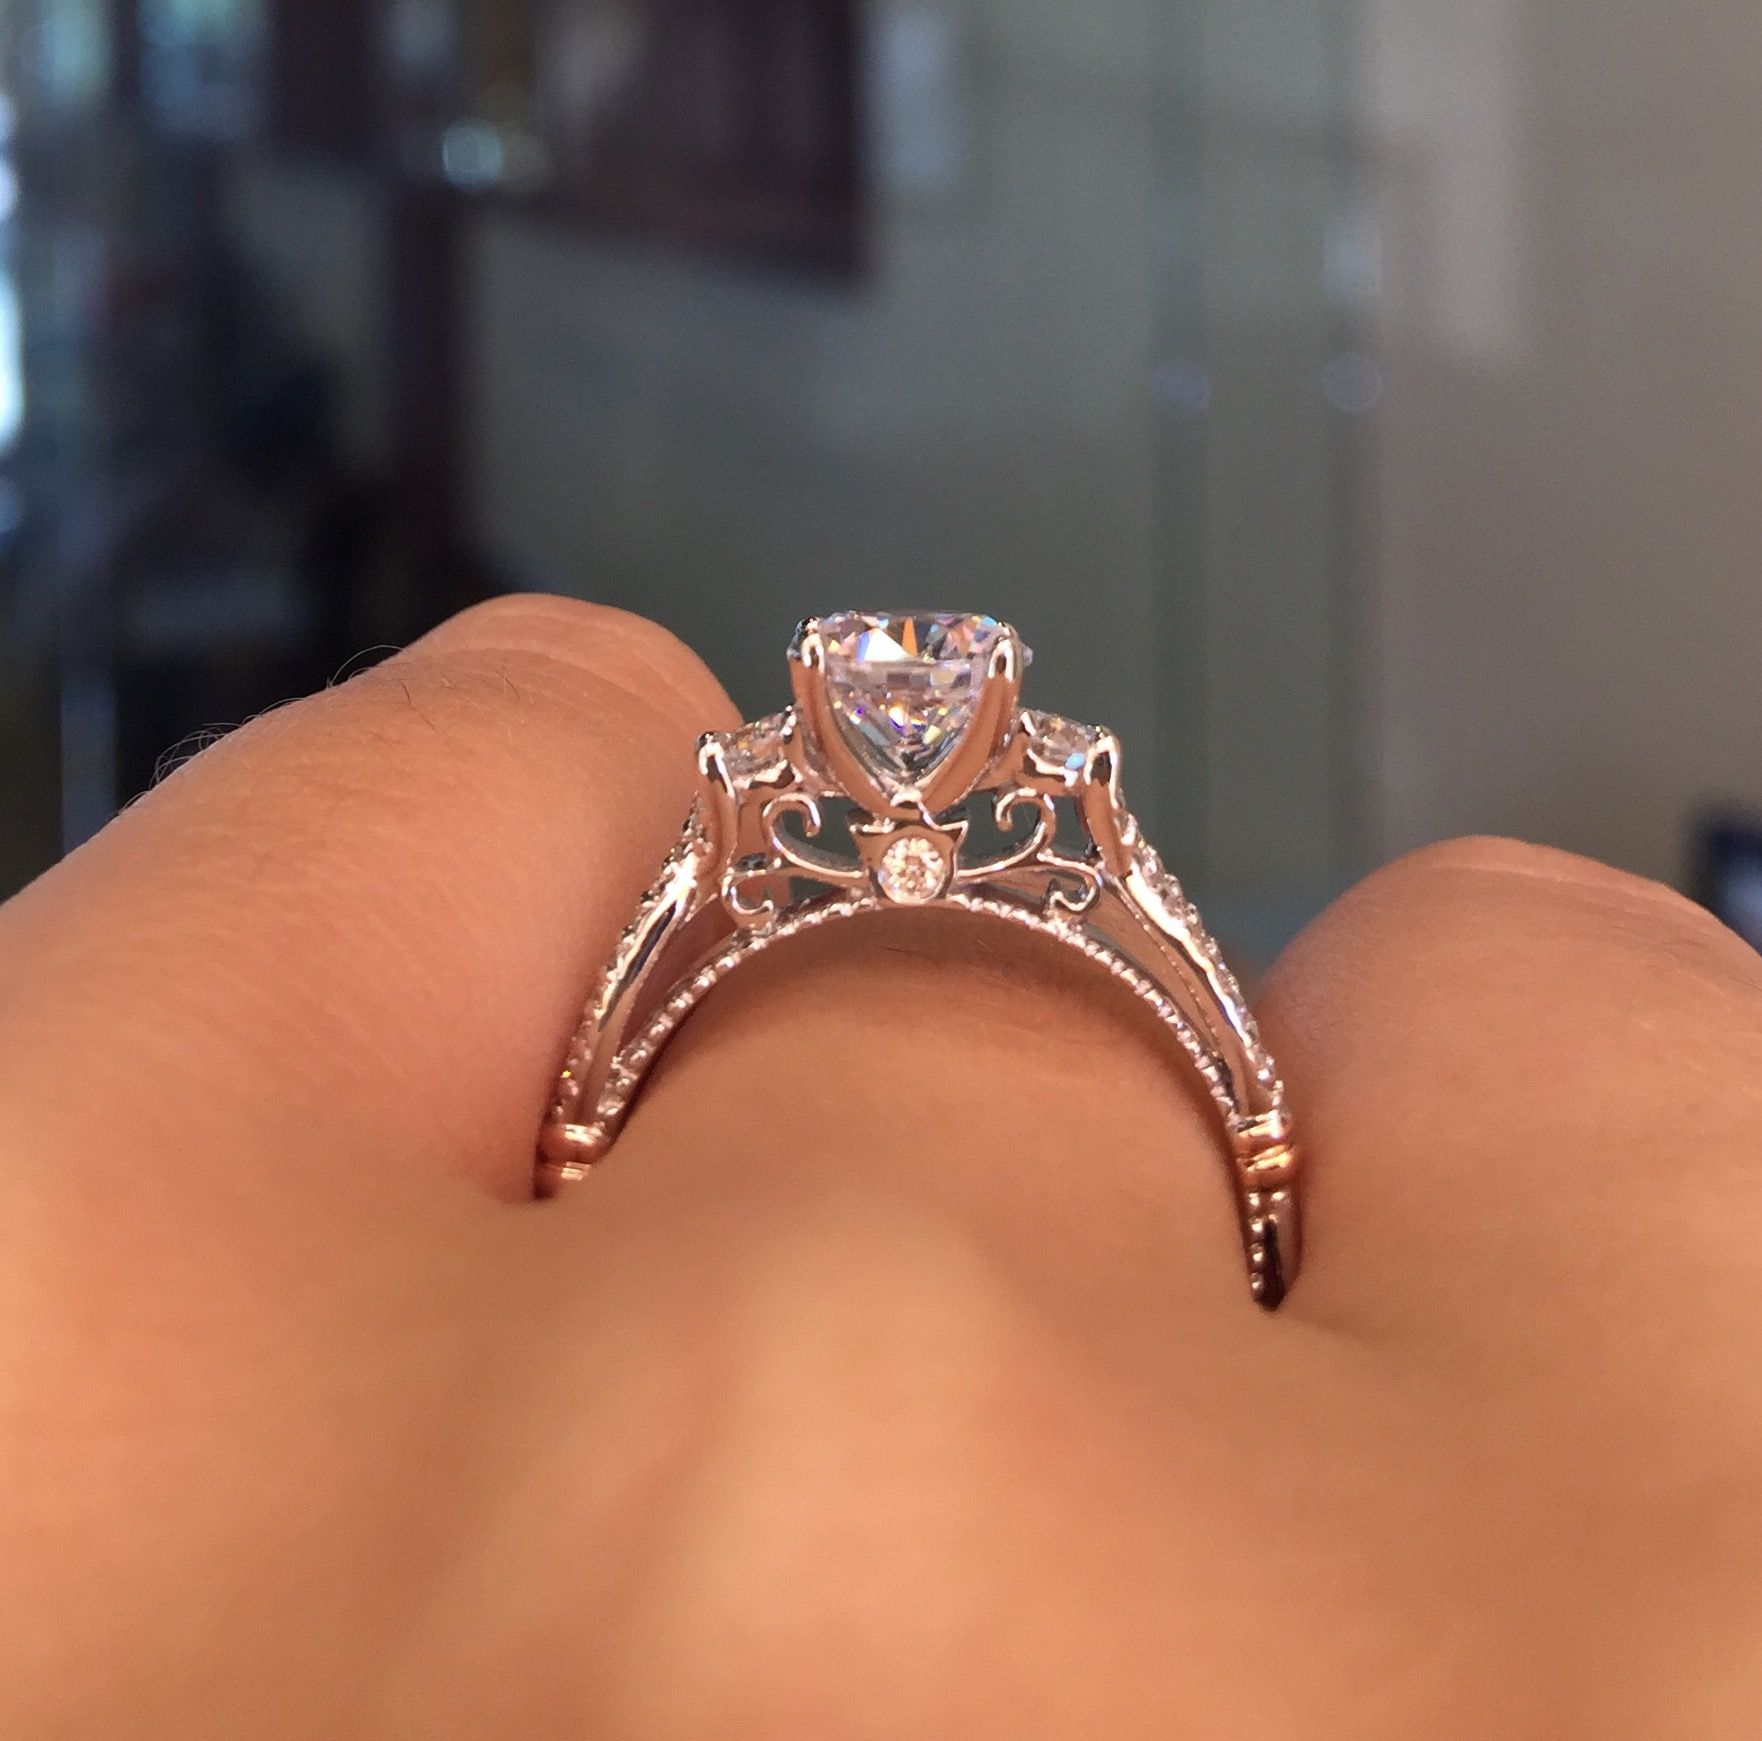 verragio parisian collection is perfection diamonds are a